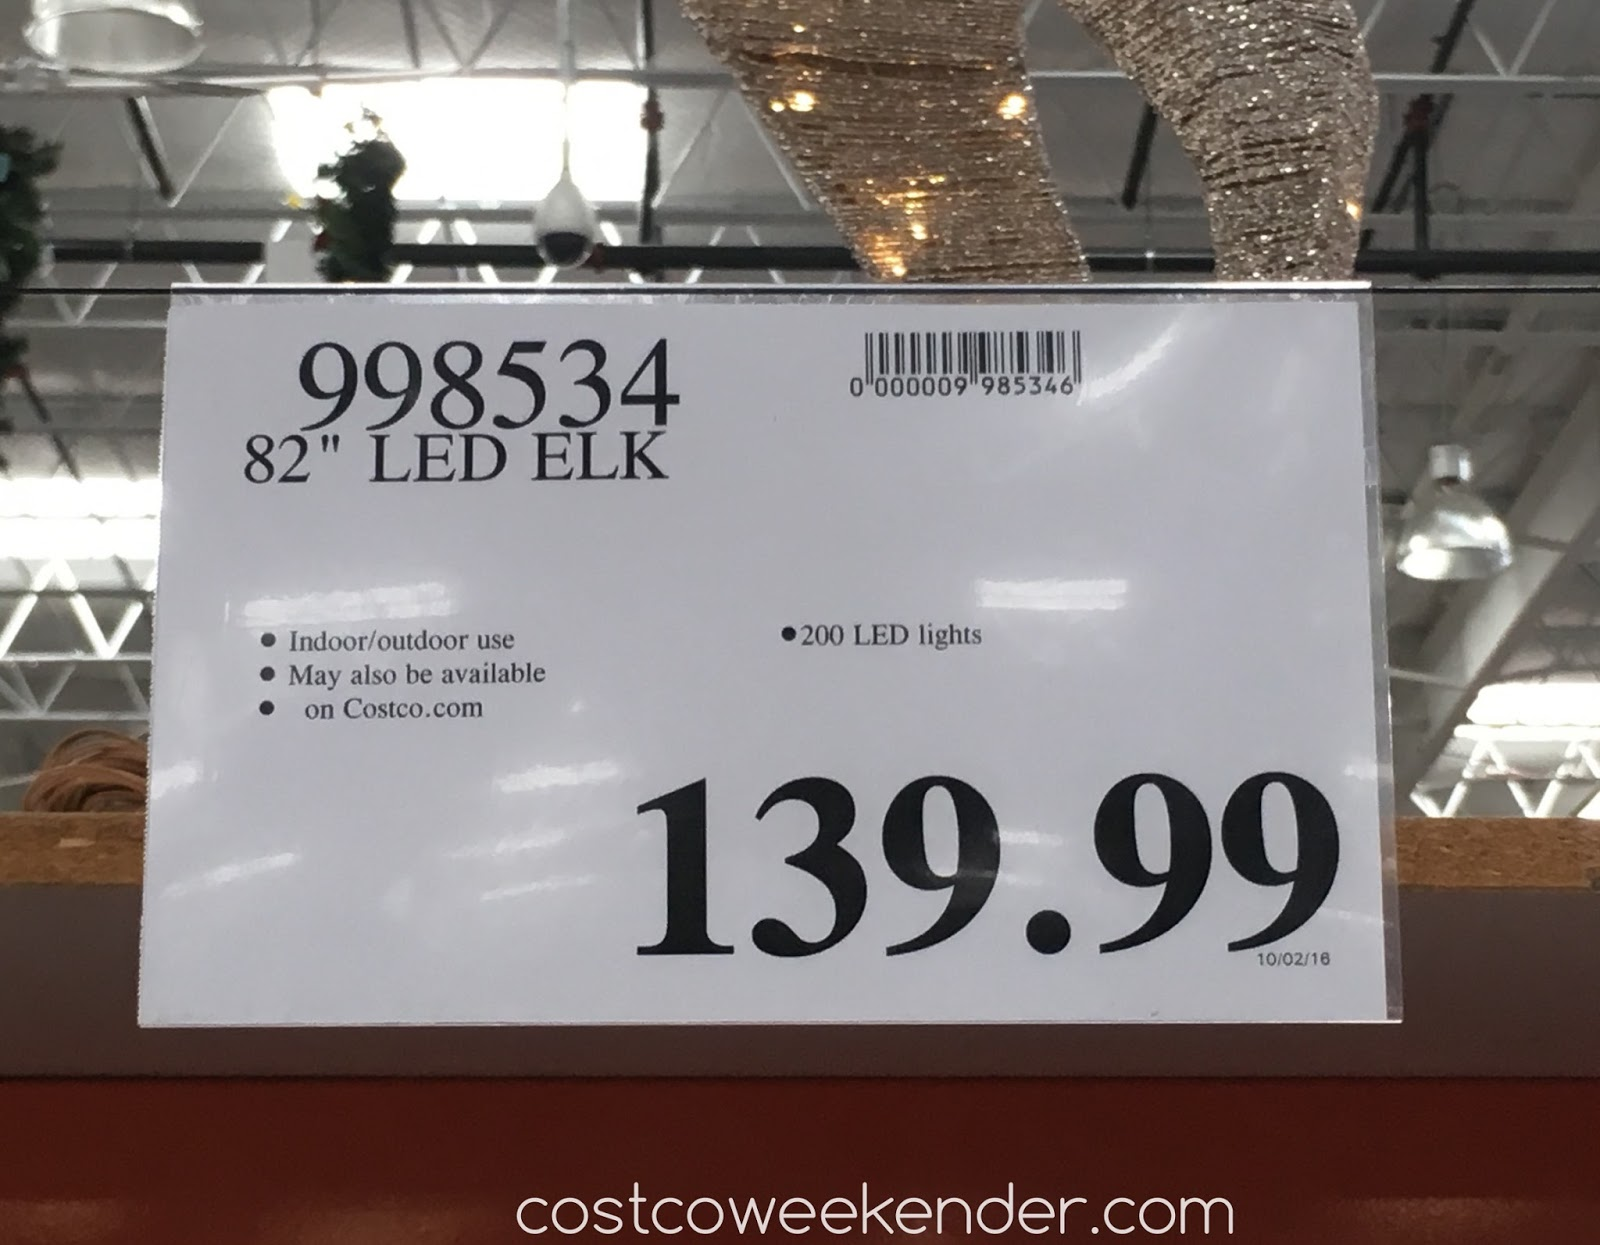 Costco 998534 - Deal for the 82-inch LED Glitter String Elk at Costco